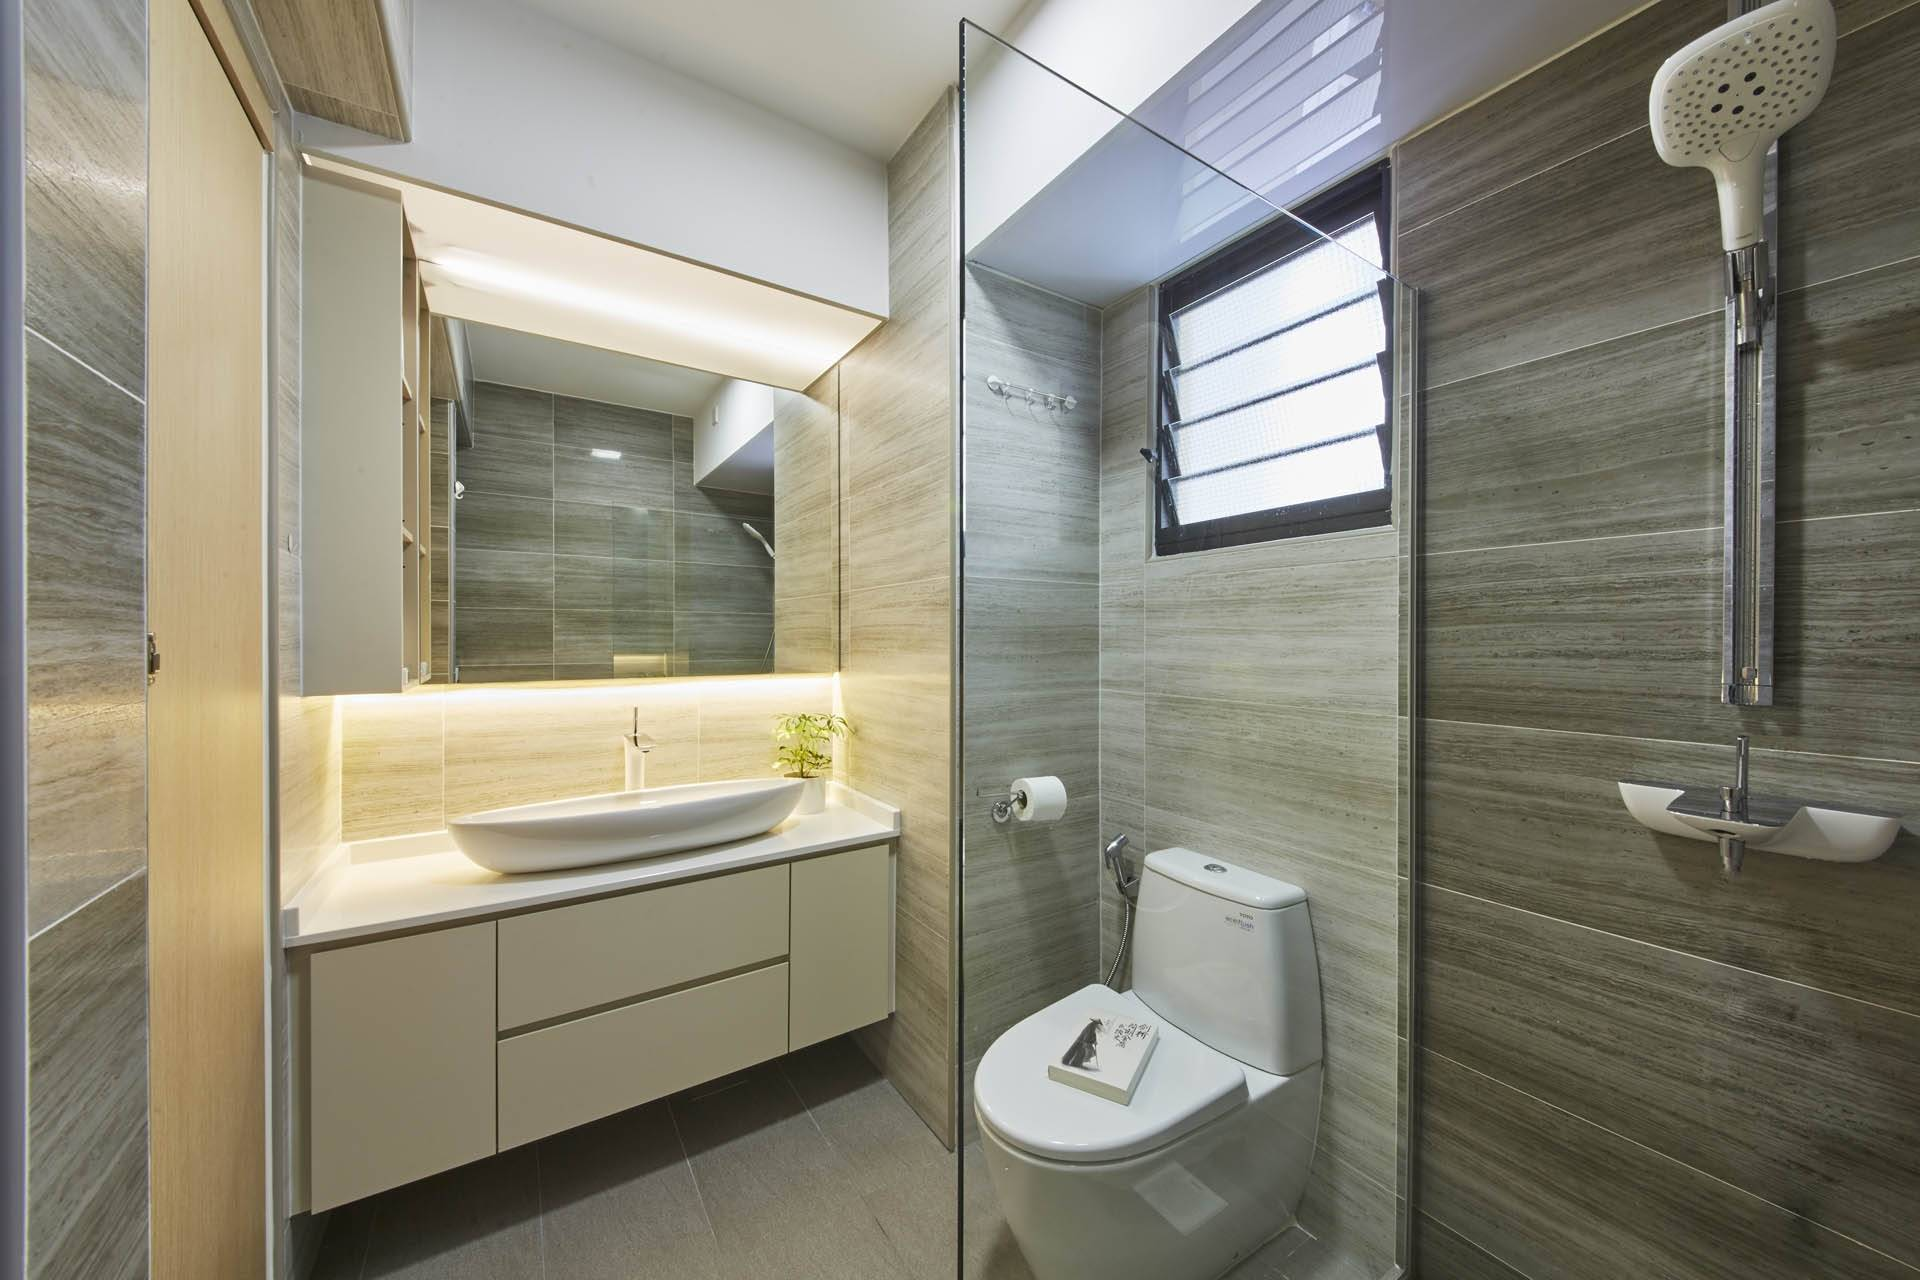 Hdb bathroom design for The bathroom designer